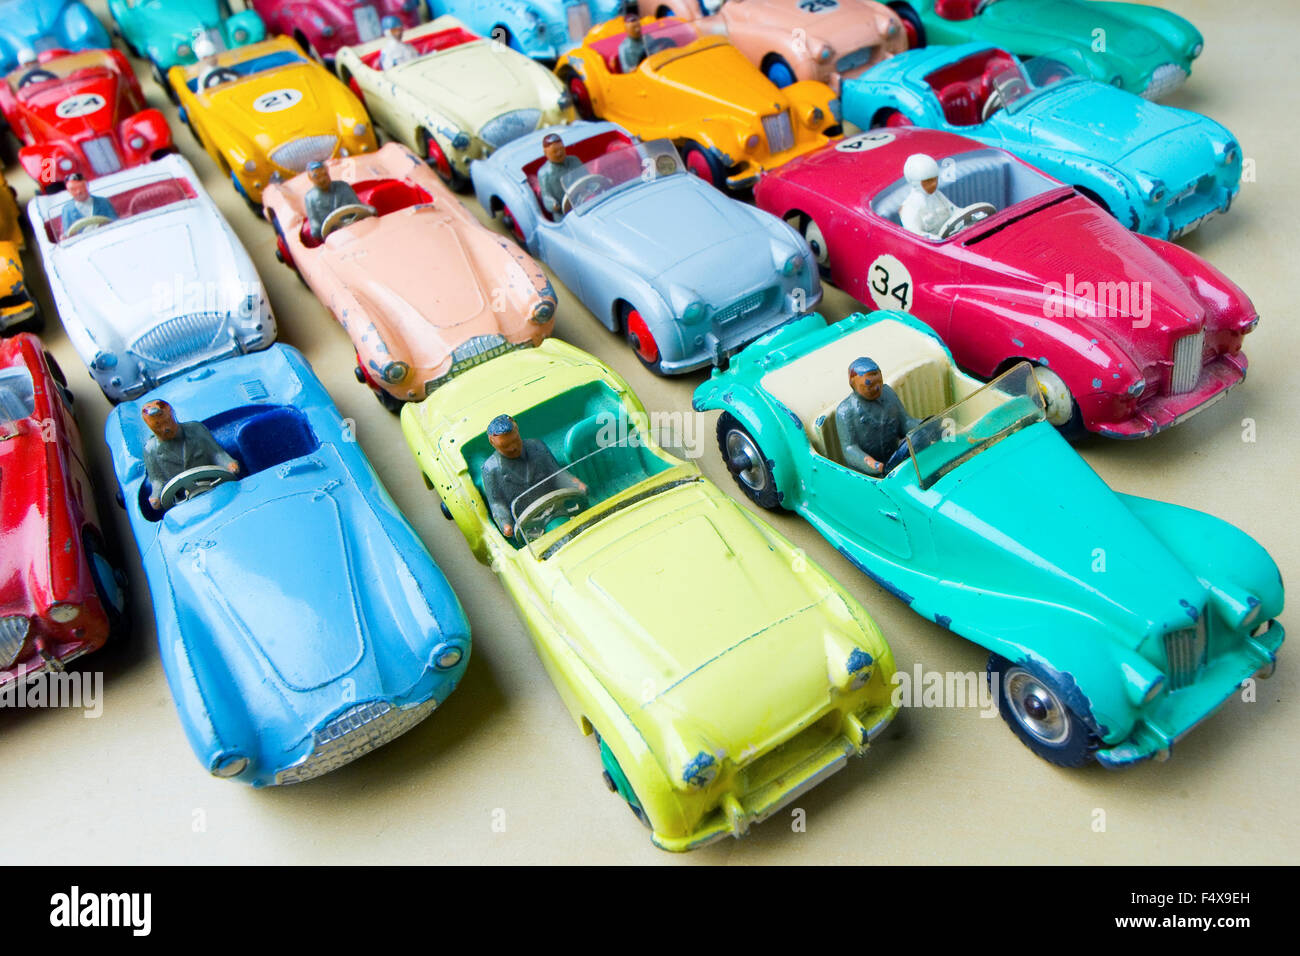 Collection of dinky Sport's cars from 1950's. multicolored cars. - Stock Image